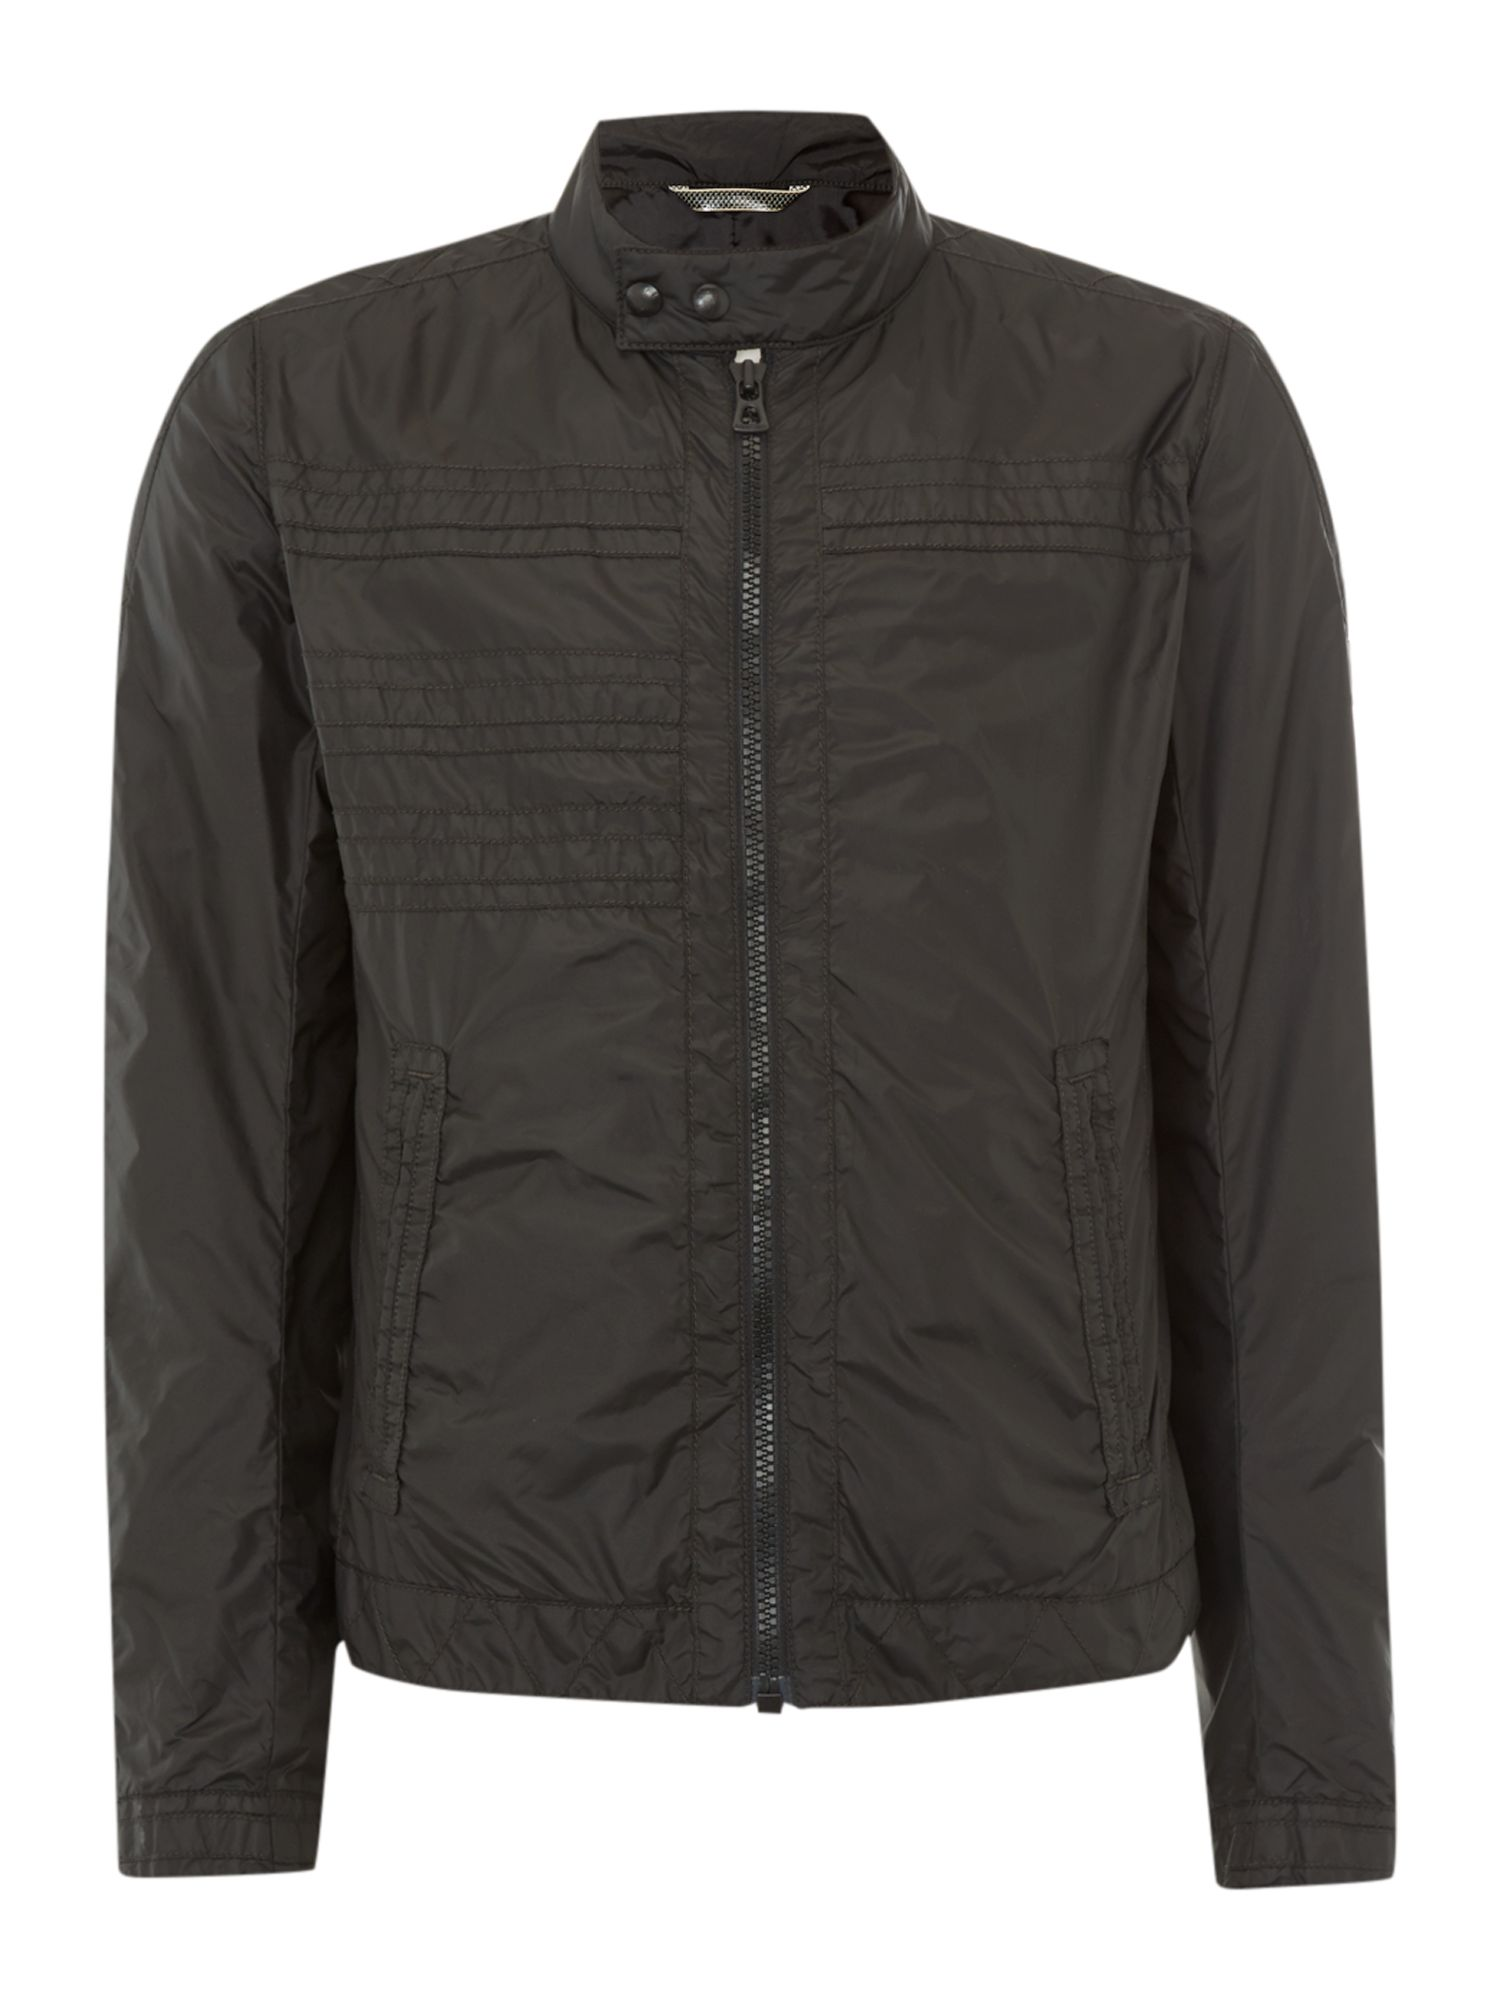 Zip up two pocket nylon jacket